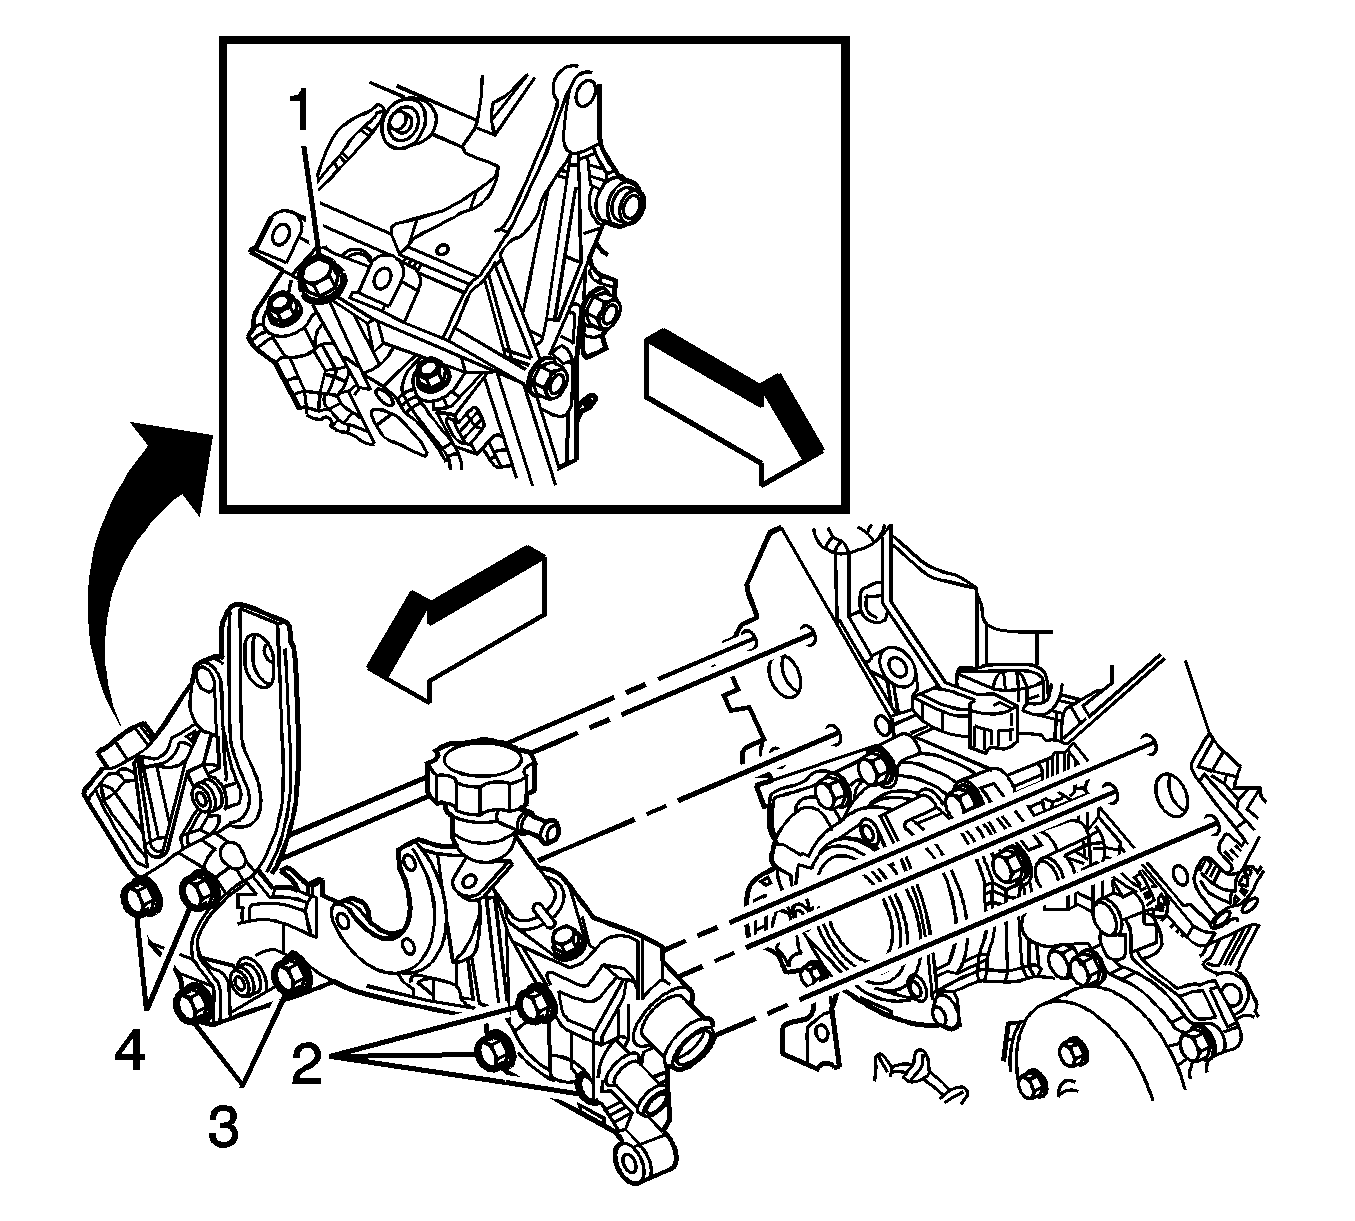 06 Chevy Impala V6 Engine Diagram 06 Free Engine Image